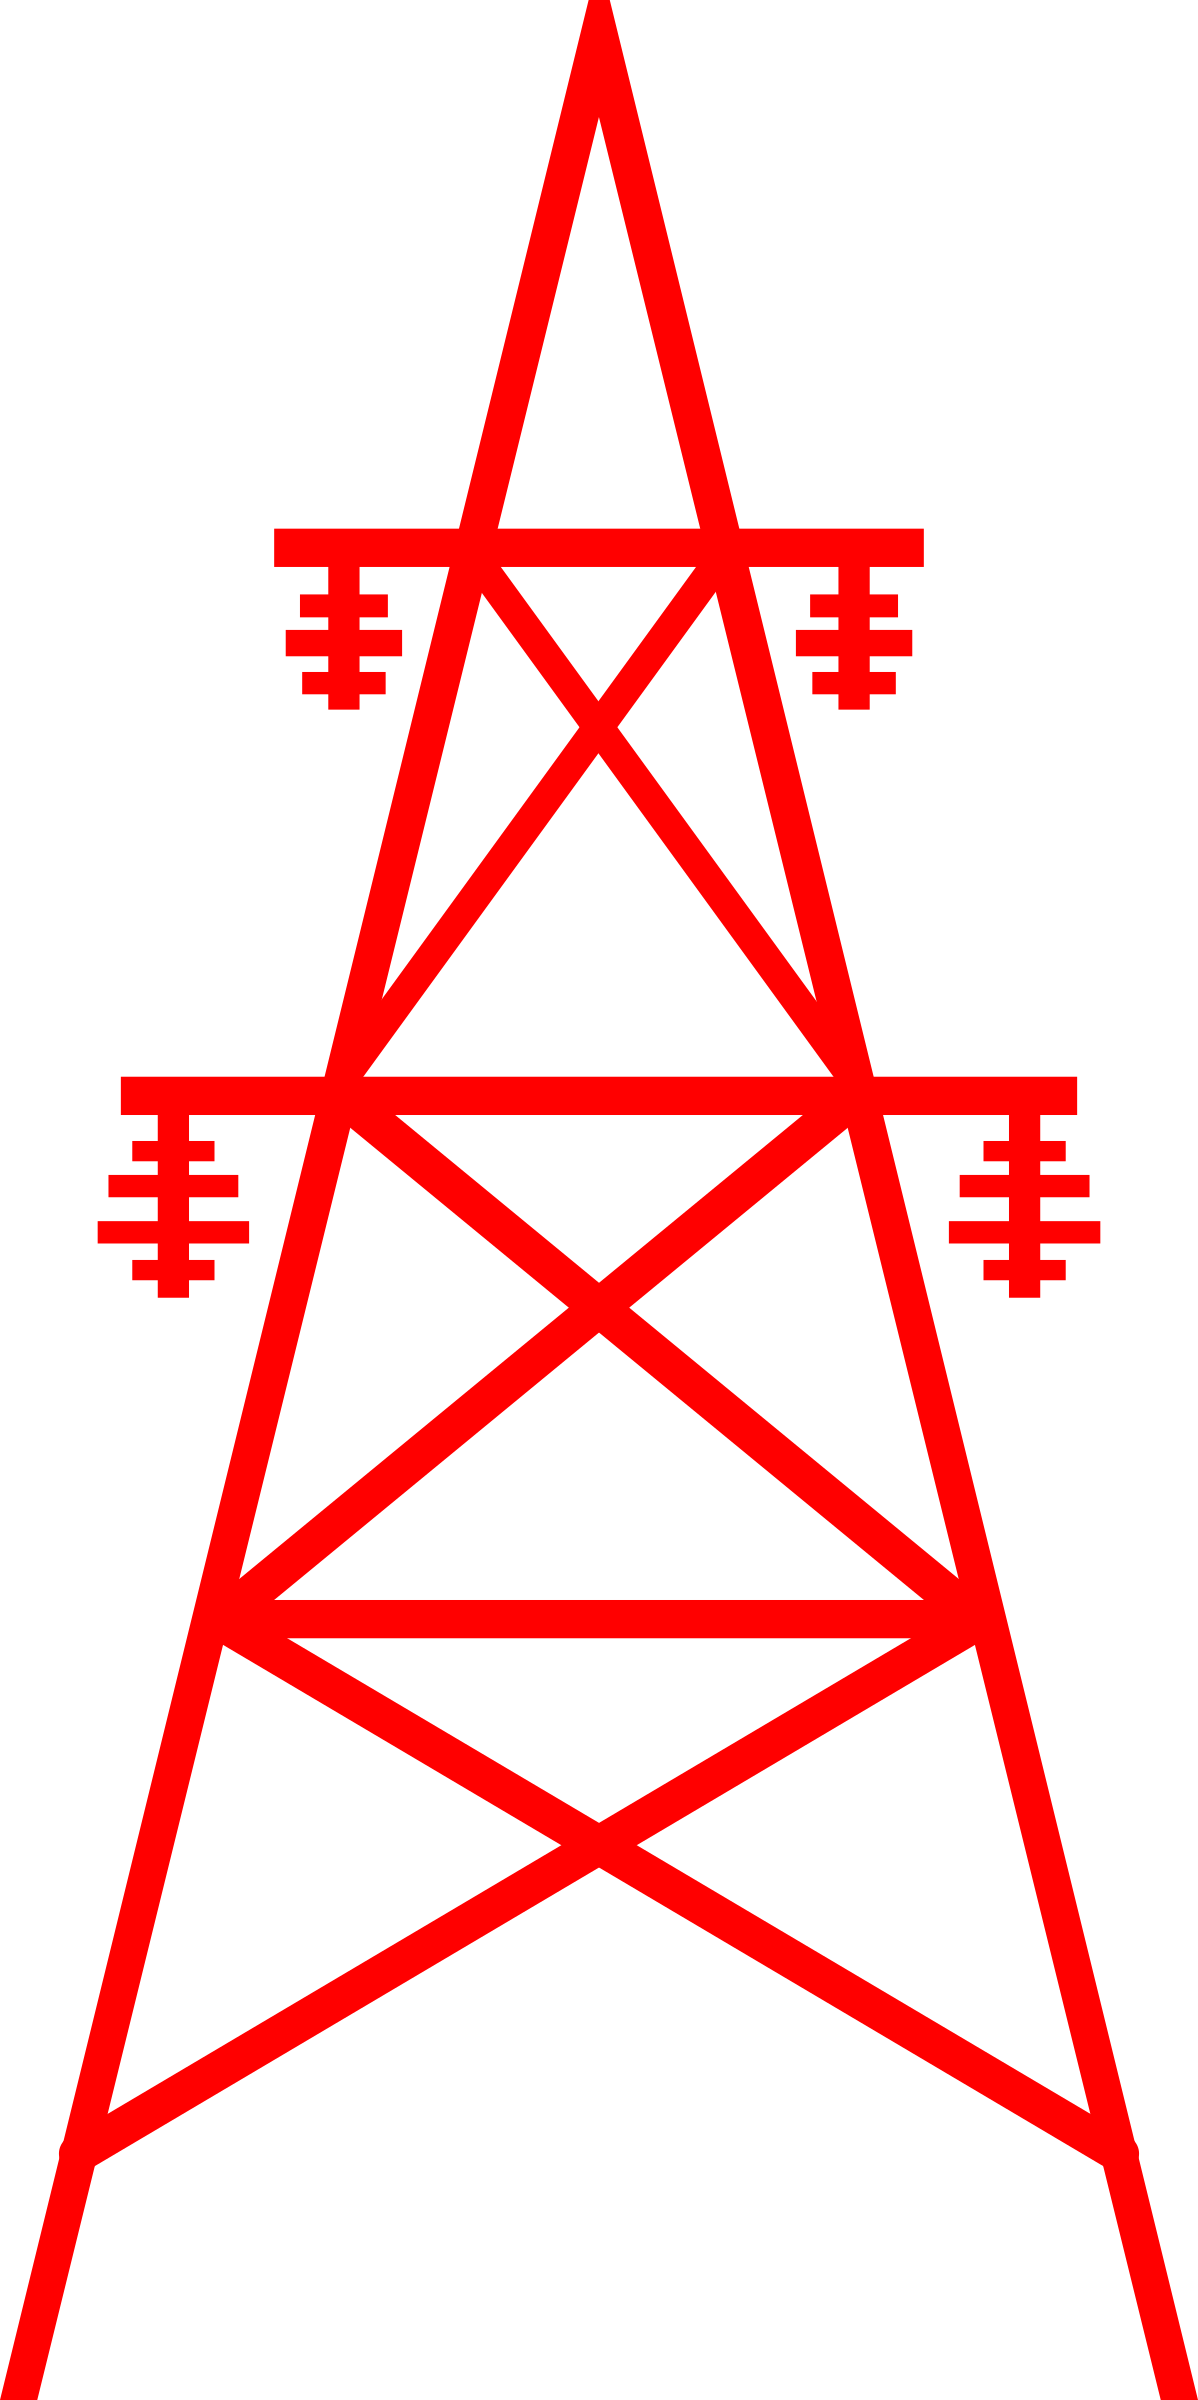 Electricity clipart electric tower. Transmission big image png